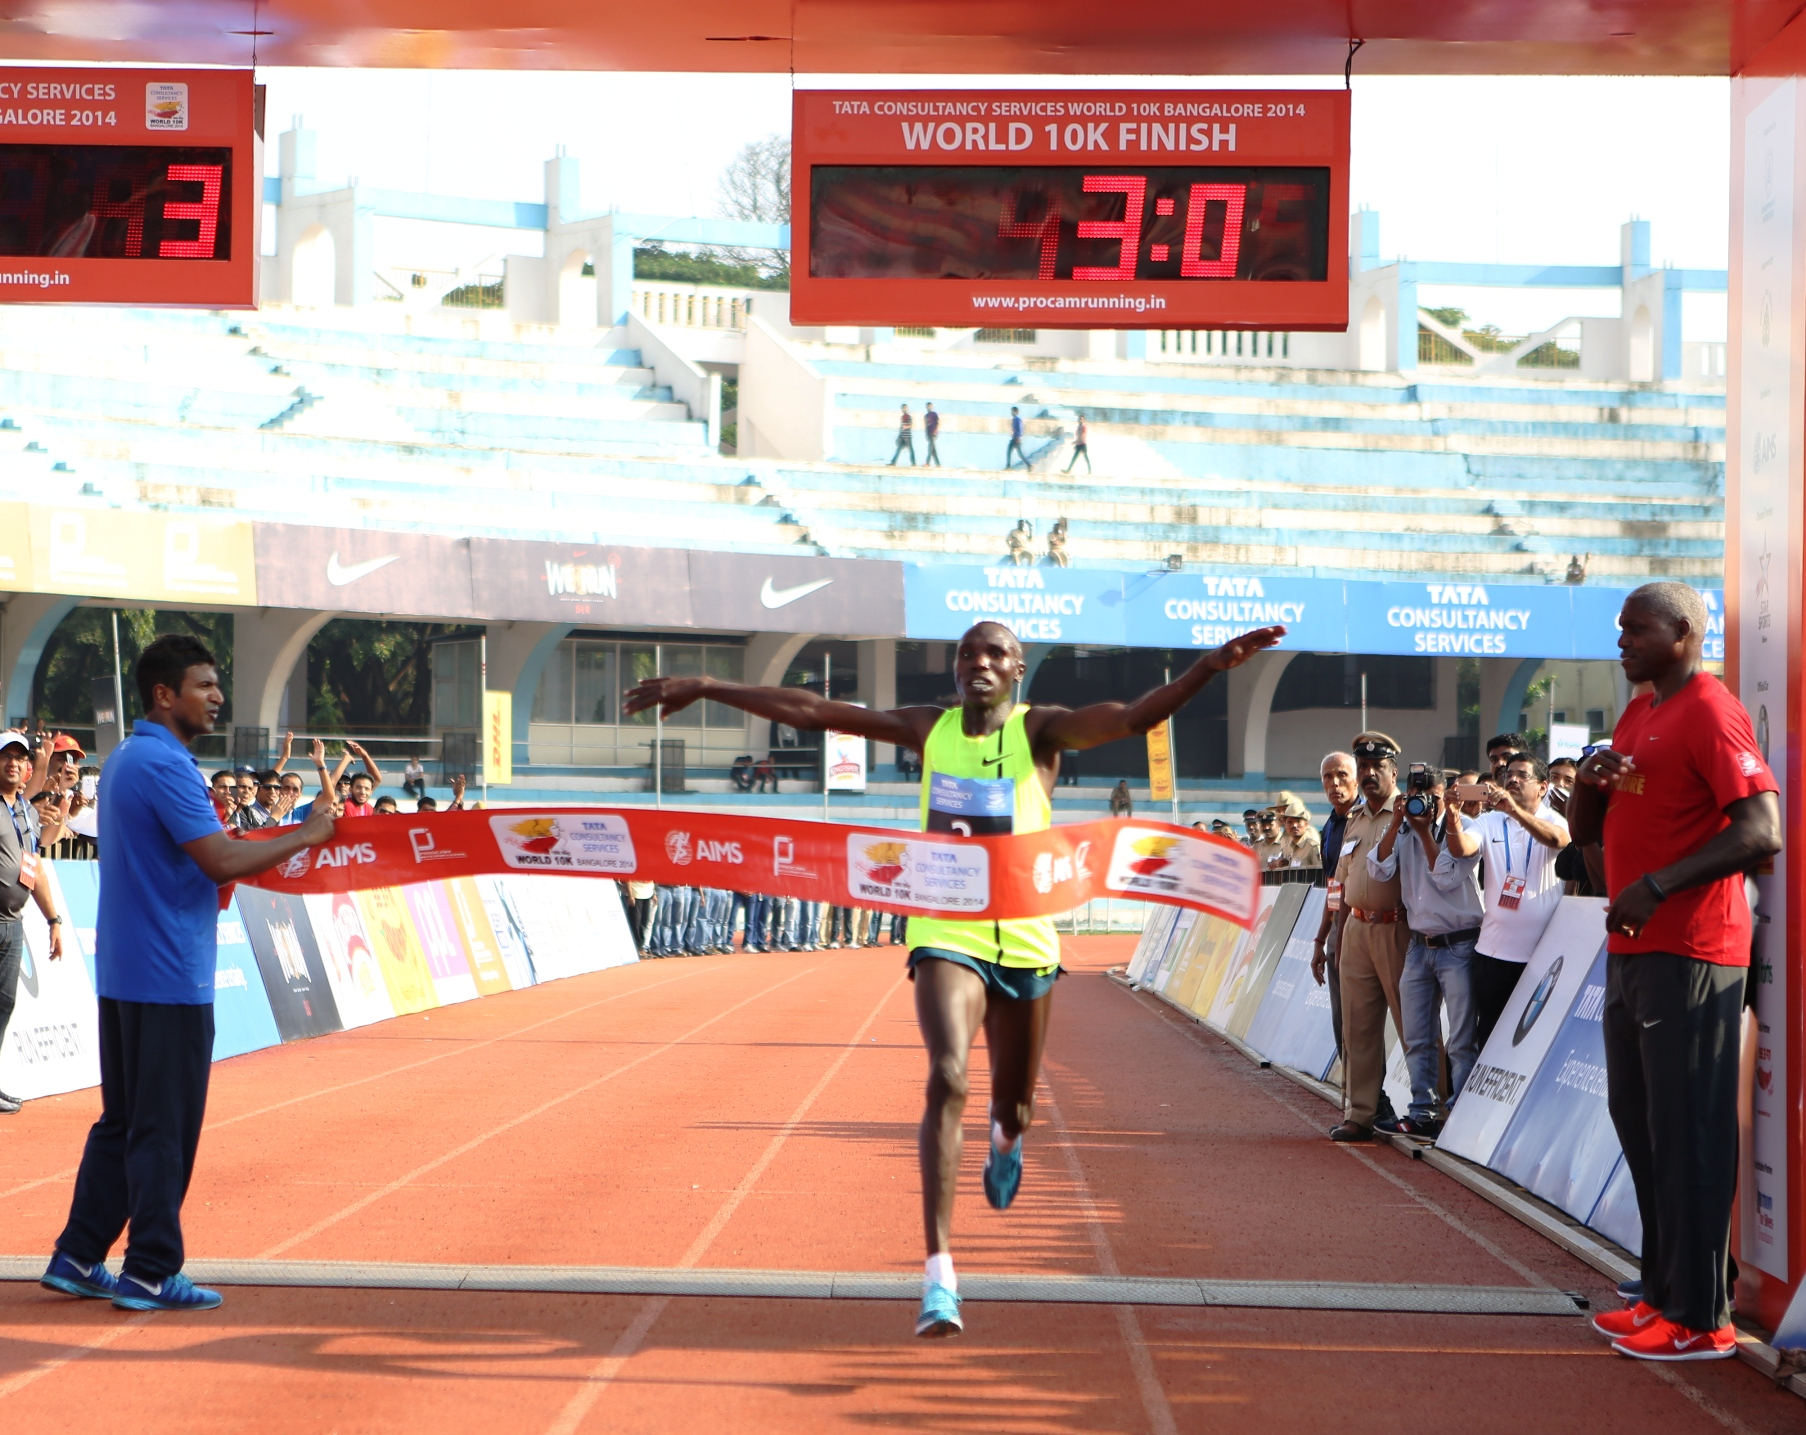 Kenya's Geoffrey Kamworor-Kipsang crosses the finish line in 00:27:44 seconds with New Course record to win the overall men's title at the TCS World 10K Bangalore 2014. In the picture also seen is Carl Lewis, Event Ambassador & Puneeth Rajkumar, Face of the Event.